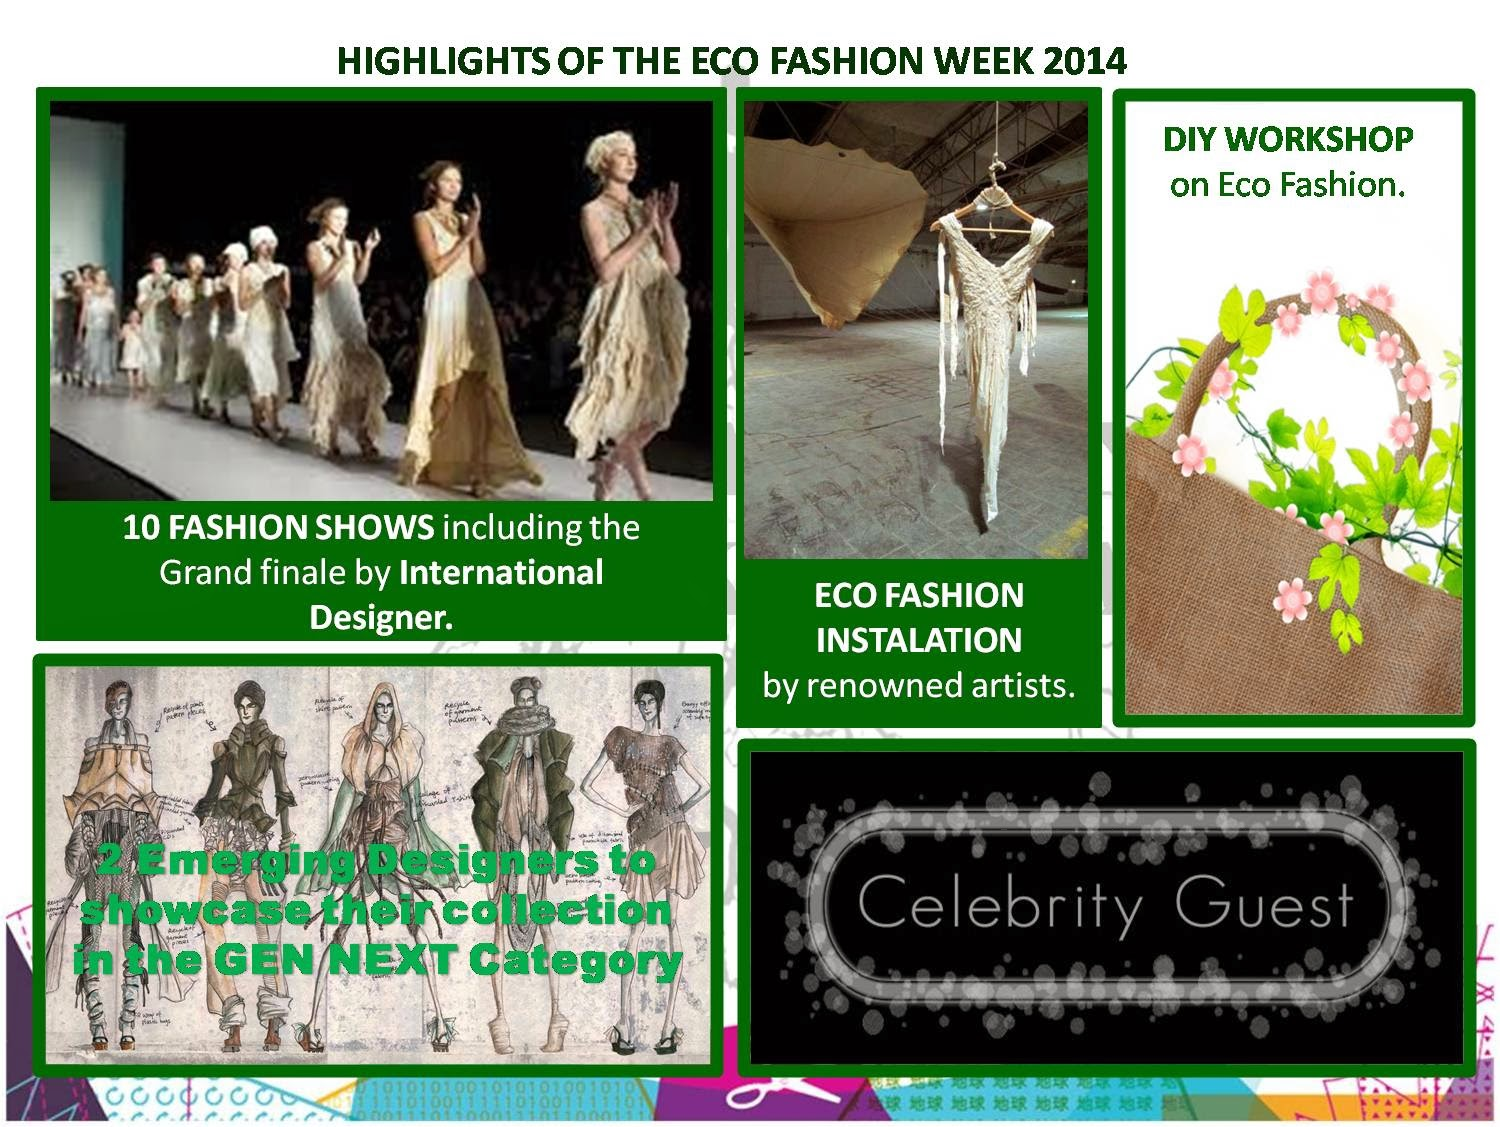 eco fashion week india - highlight